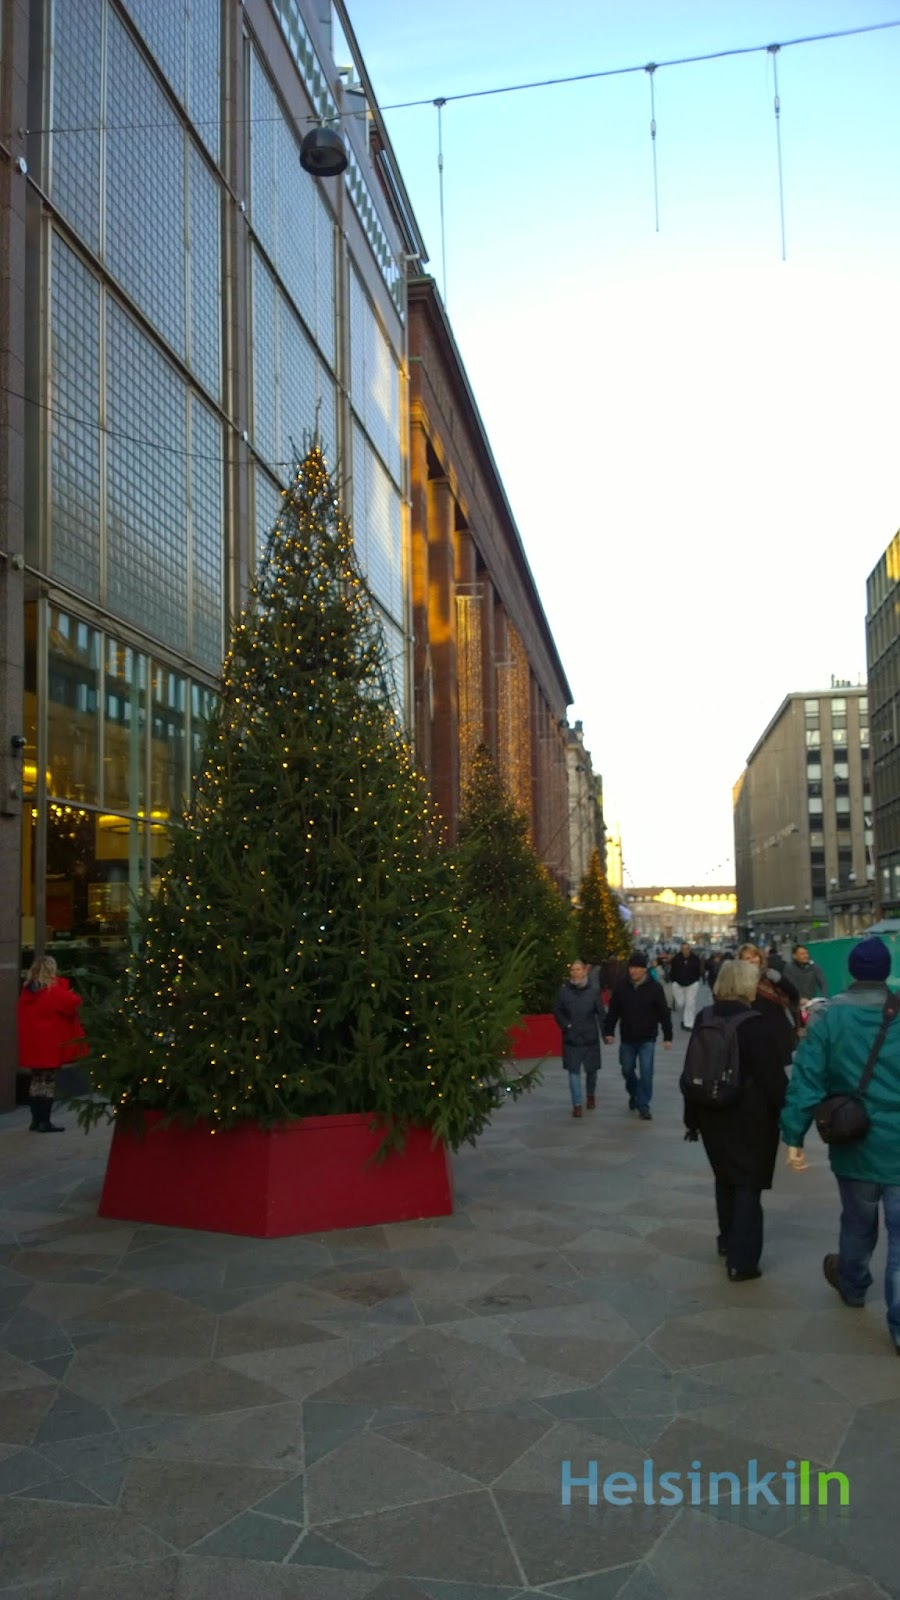 Stockmann Christmas trees on Keskuskatu